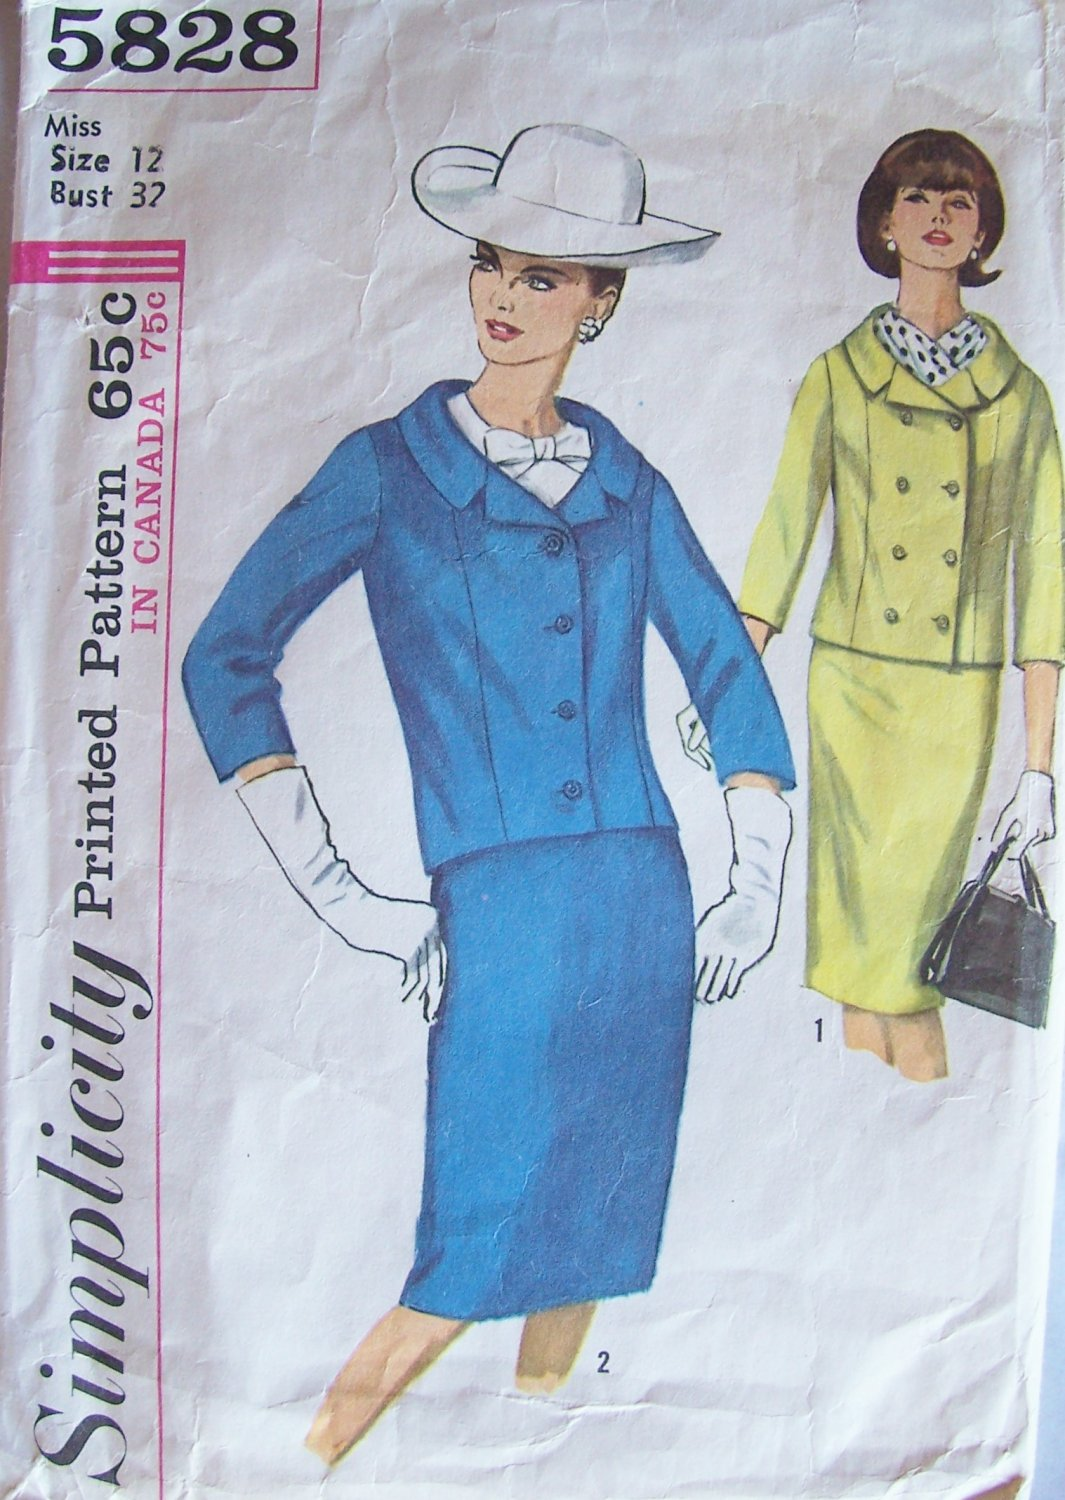 Vintage 60s Simplicity 5828 Double Breasted Jacket Slim Skirt Suit Dress Pattern Size 12